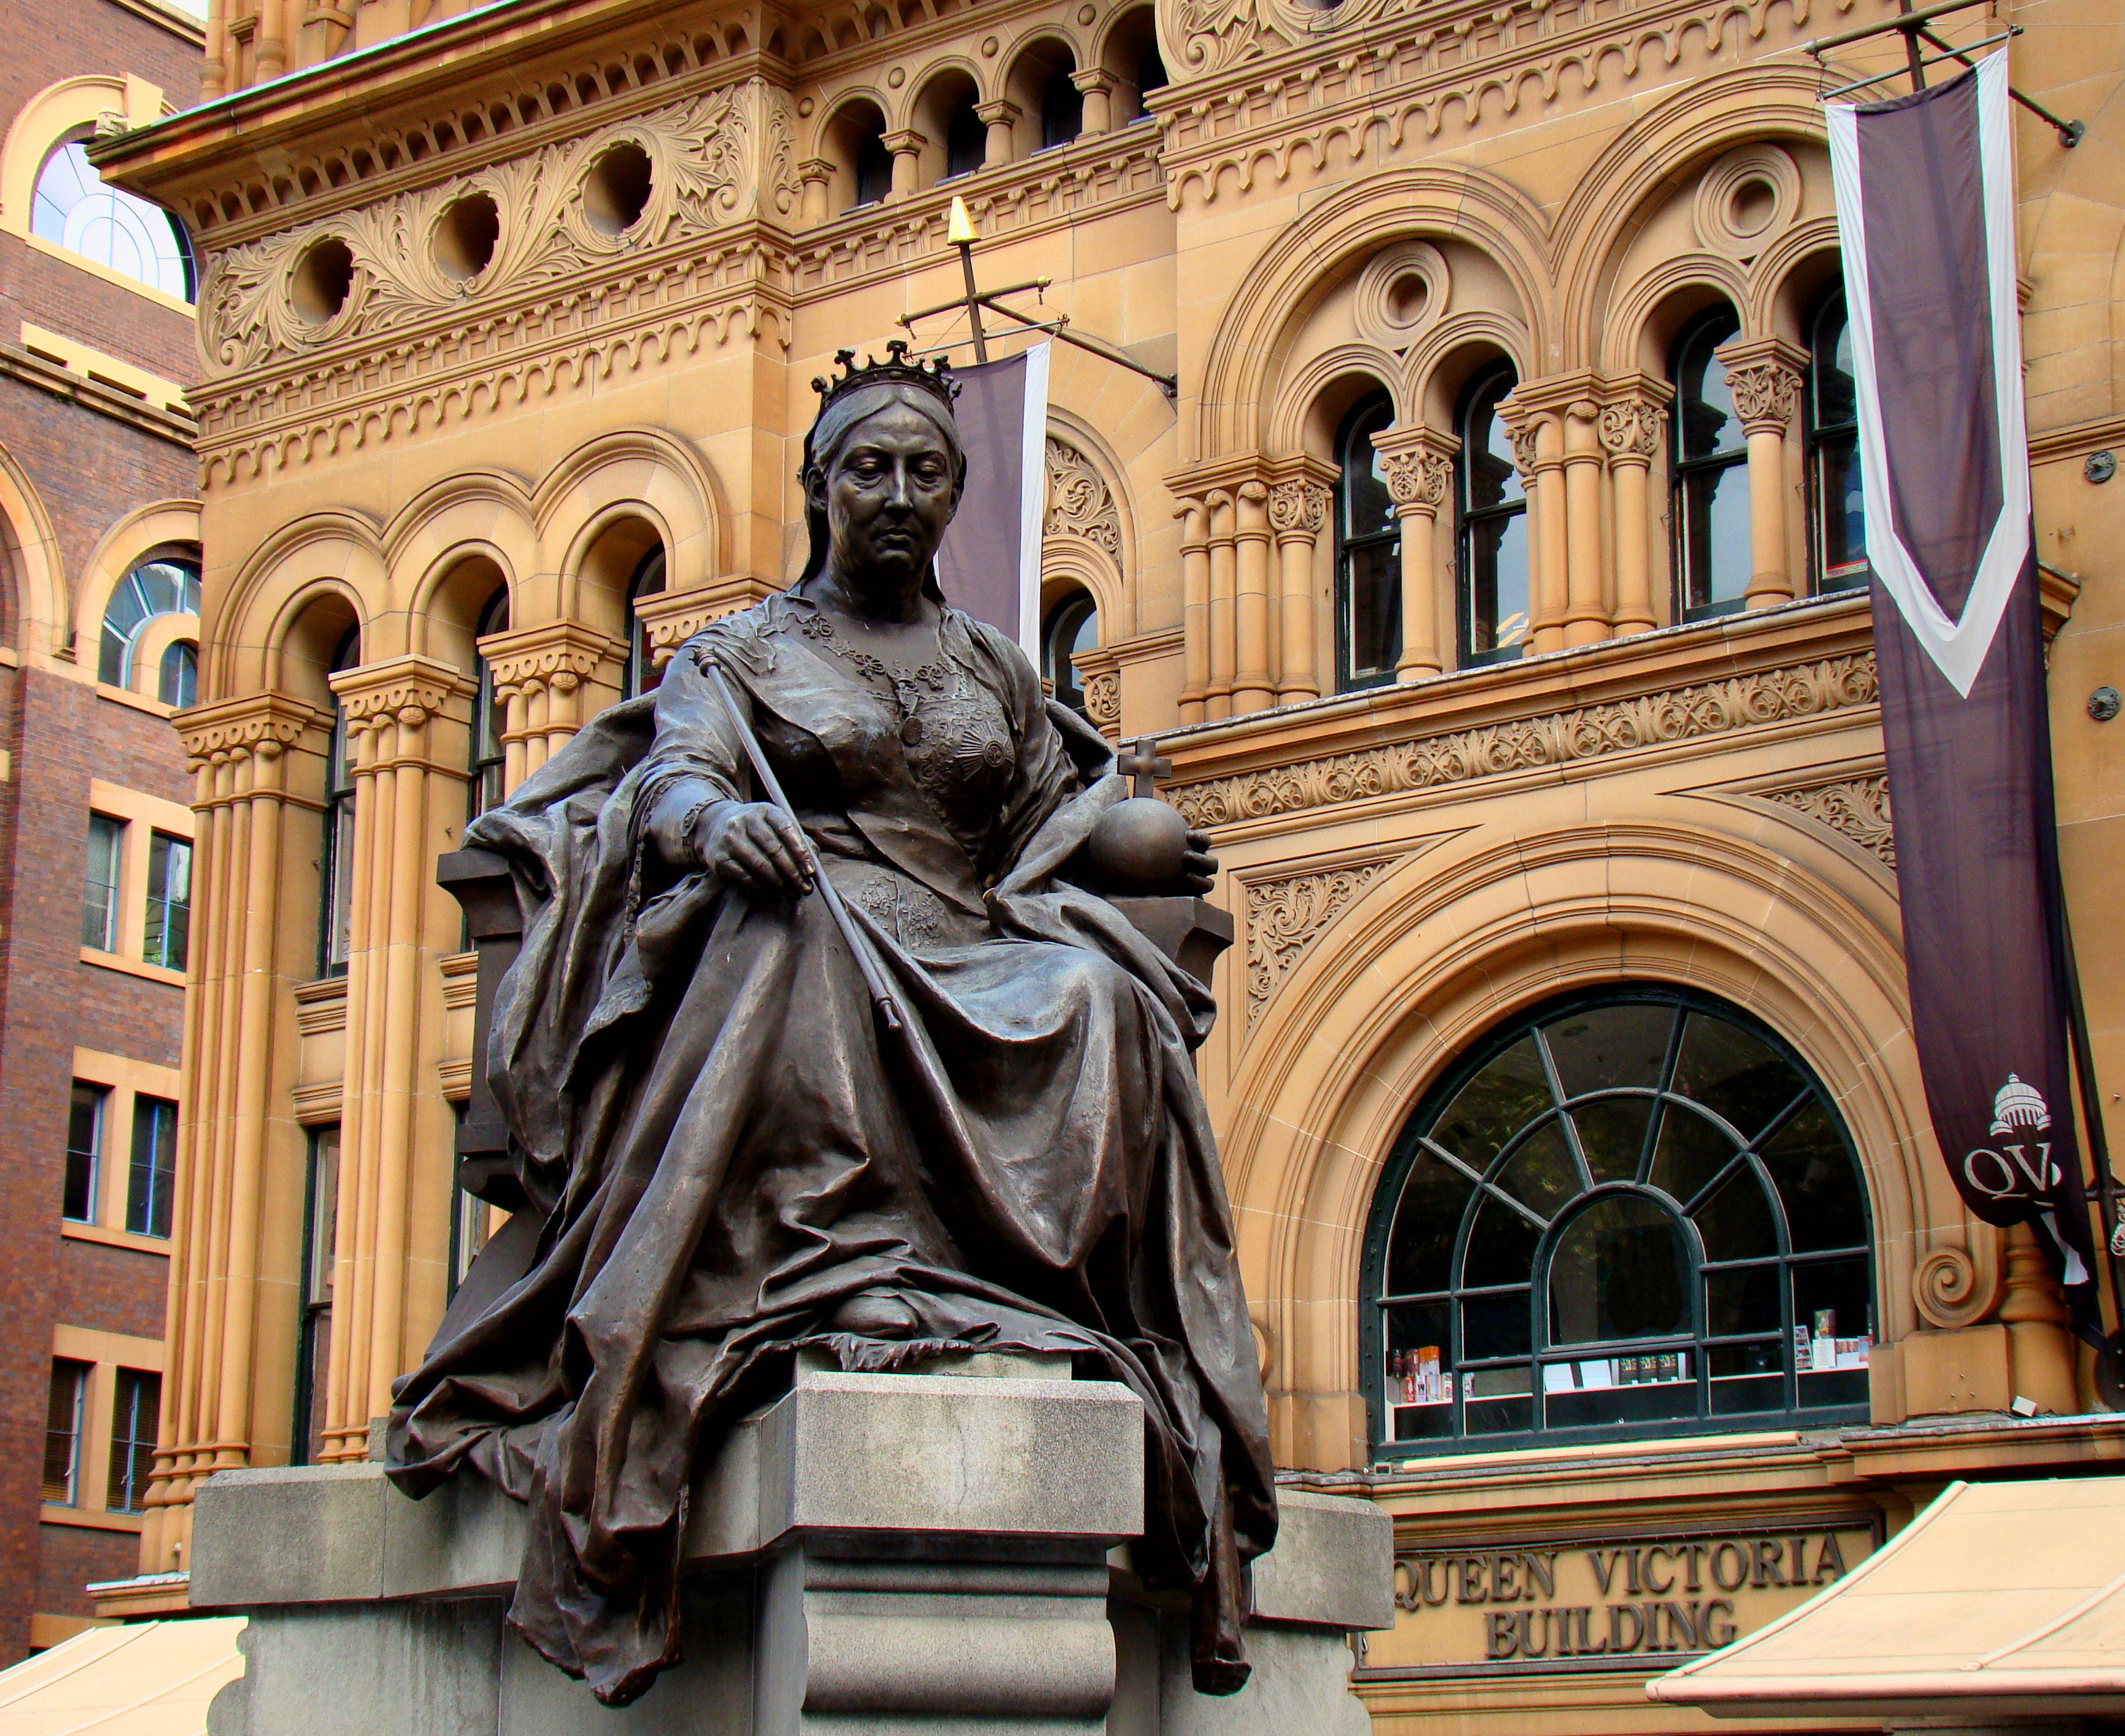 Statue of Queen Victoria in